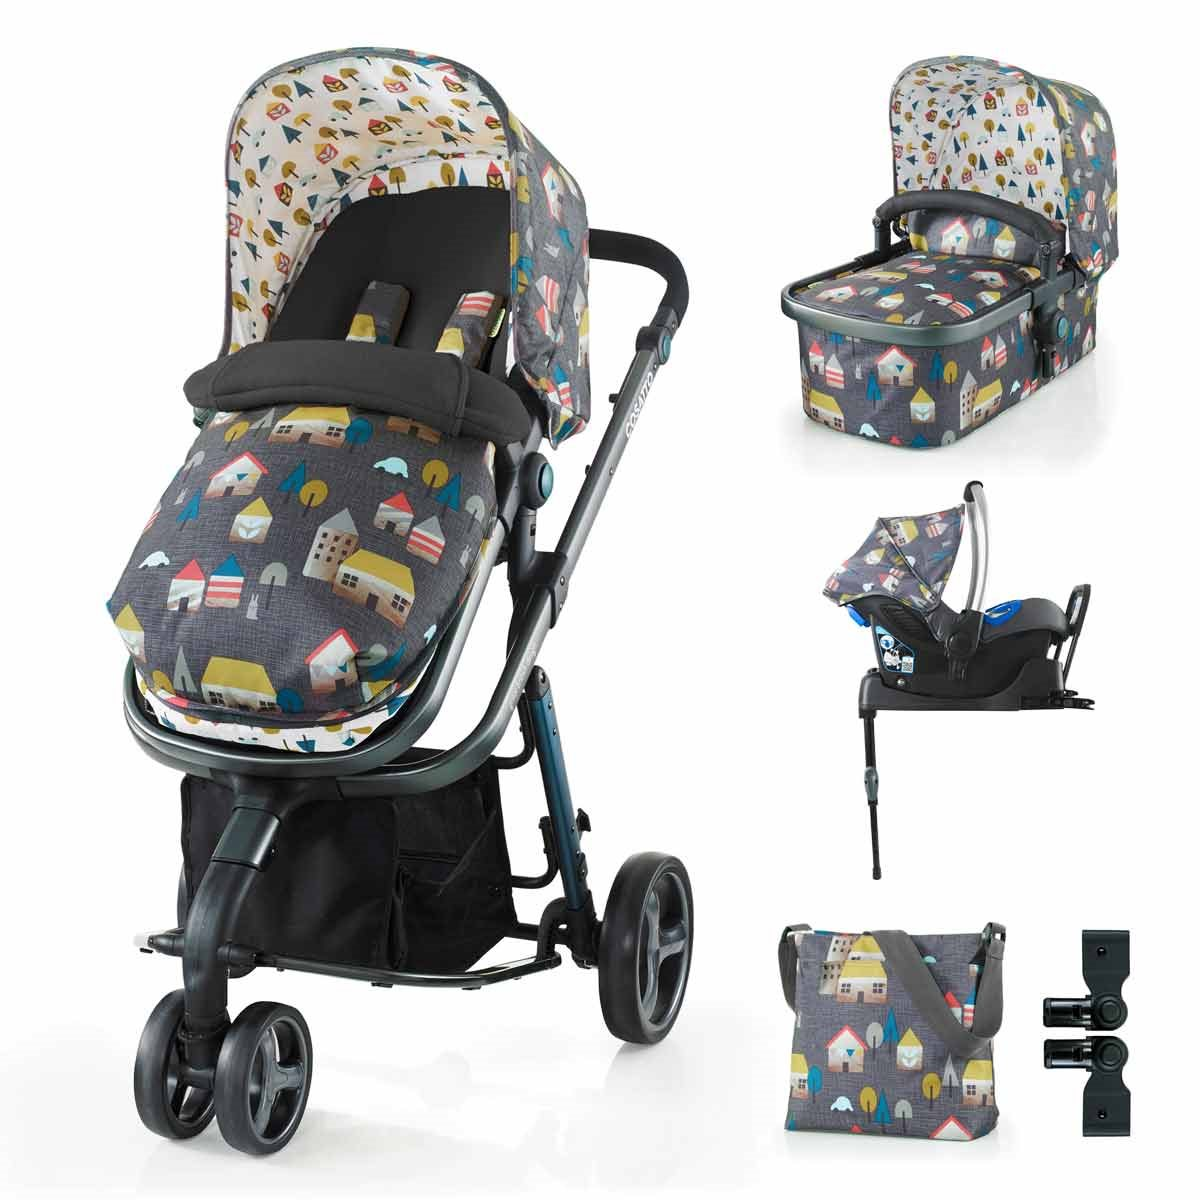 COSATTO Giggle 2 Travel System + FREE Infant Car Seat worth $299!